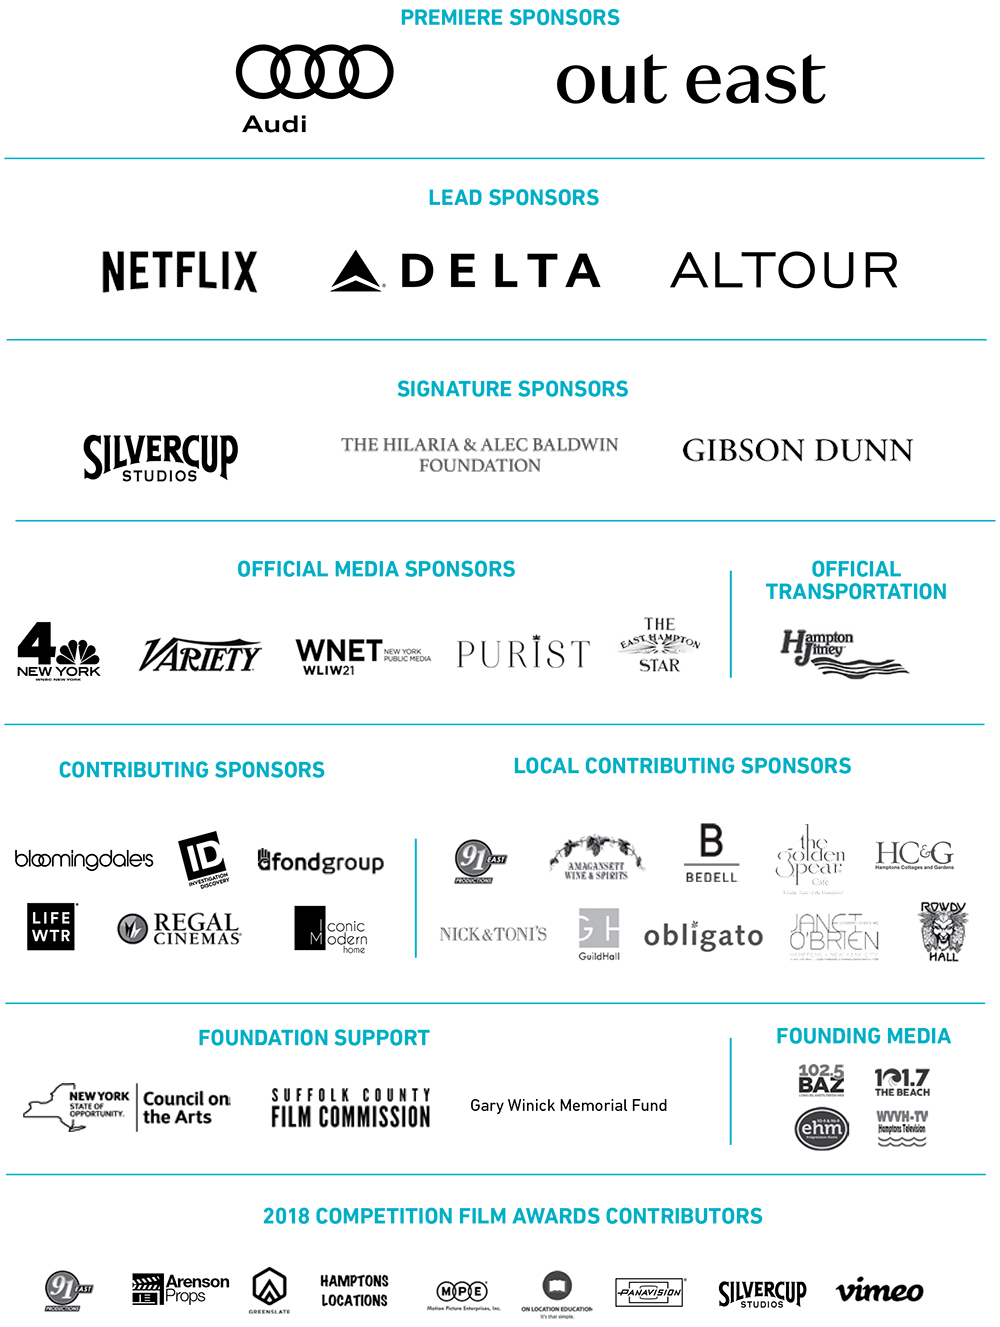 HIFF 2018 Sponsors page 1000